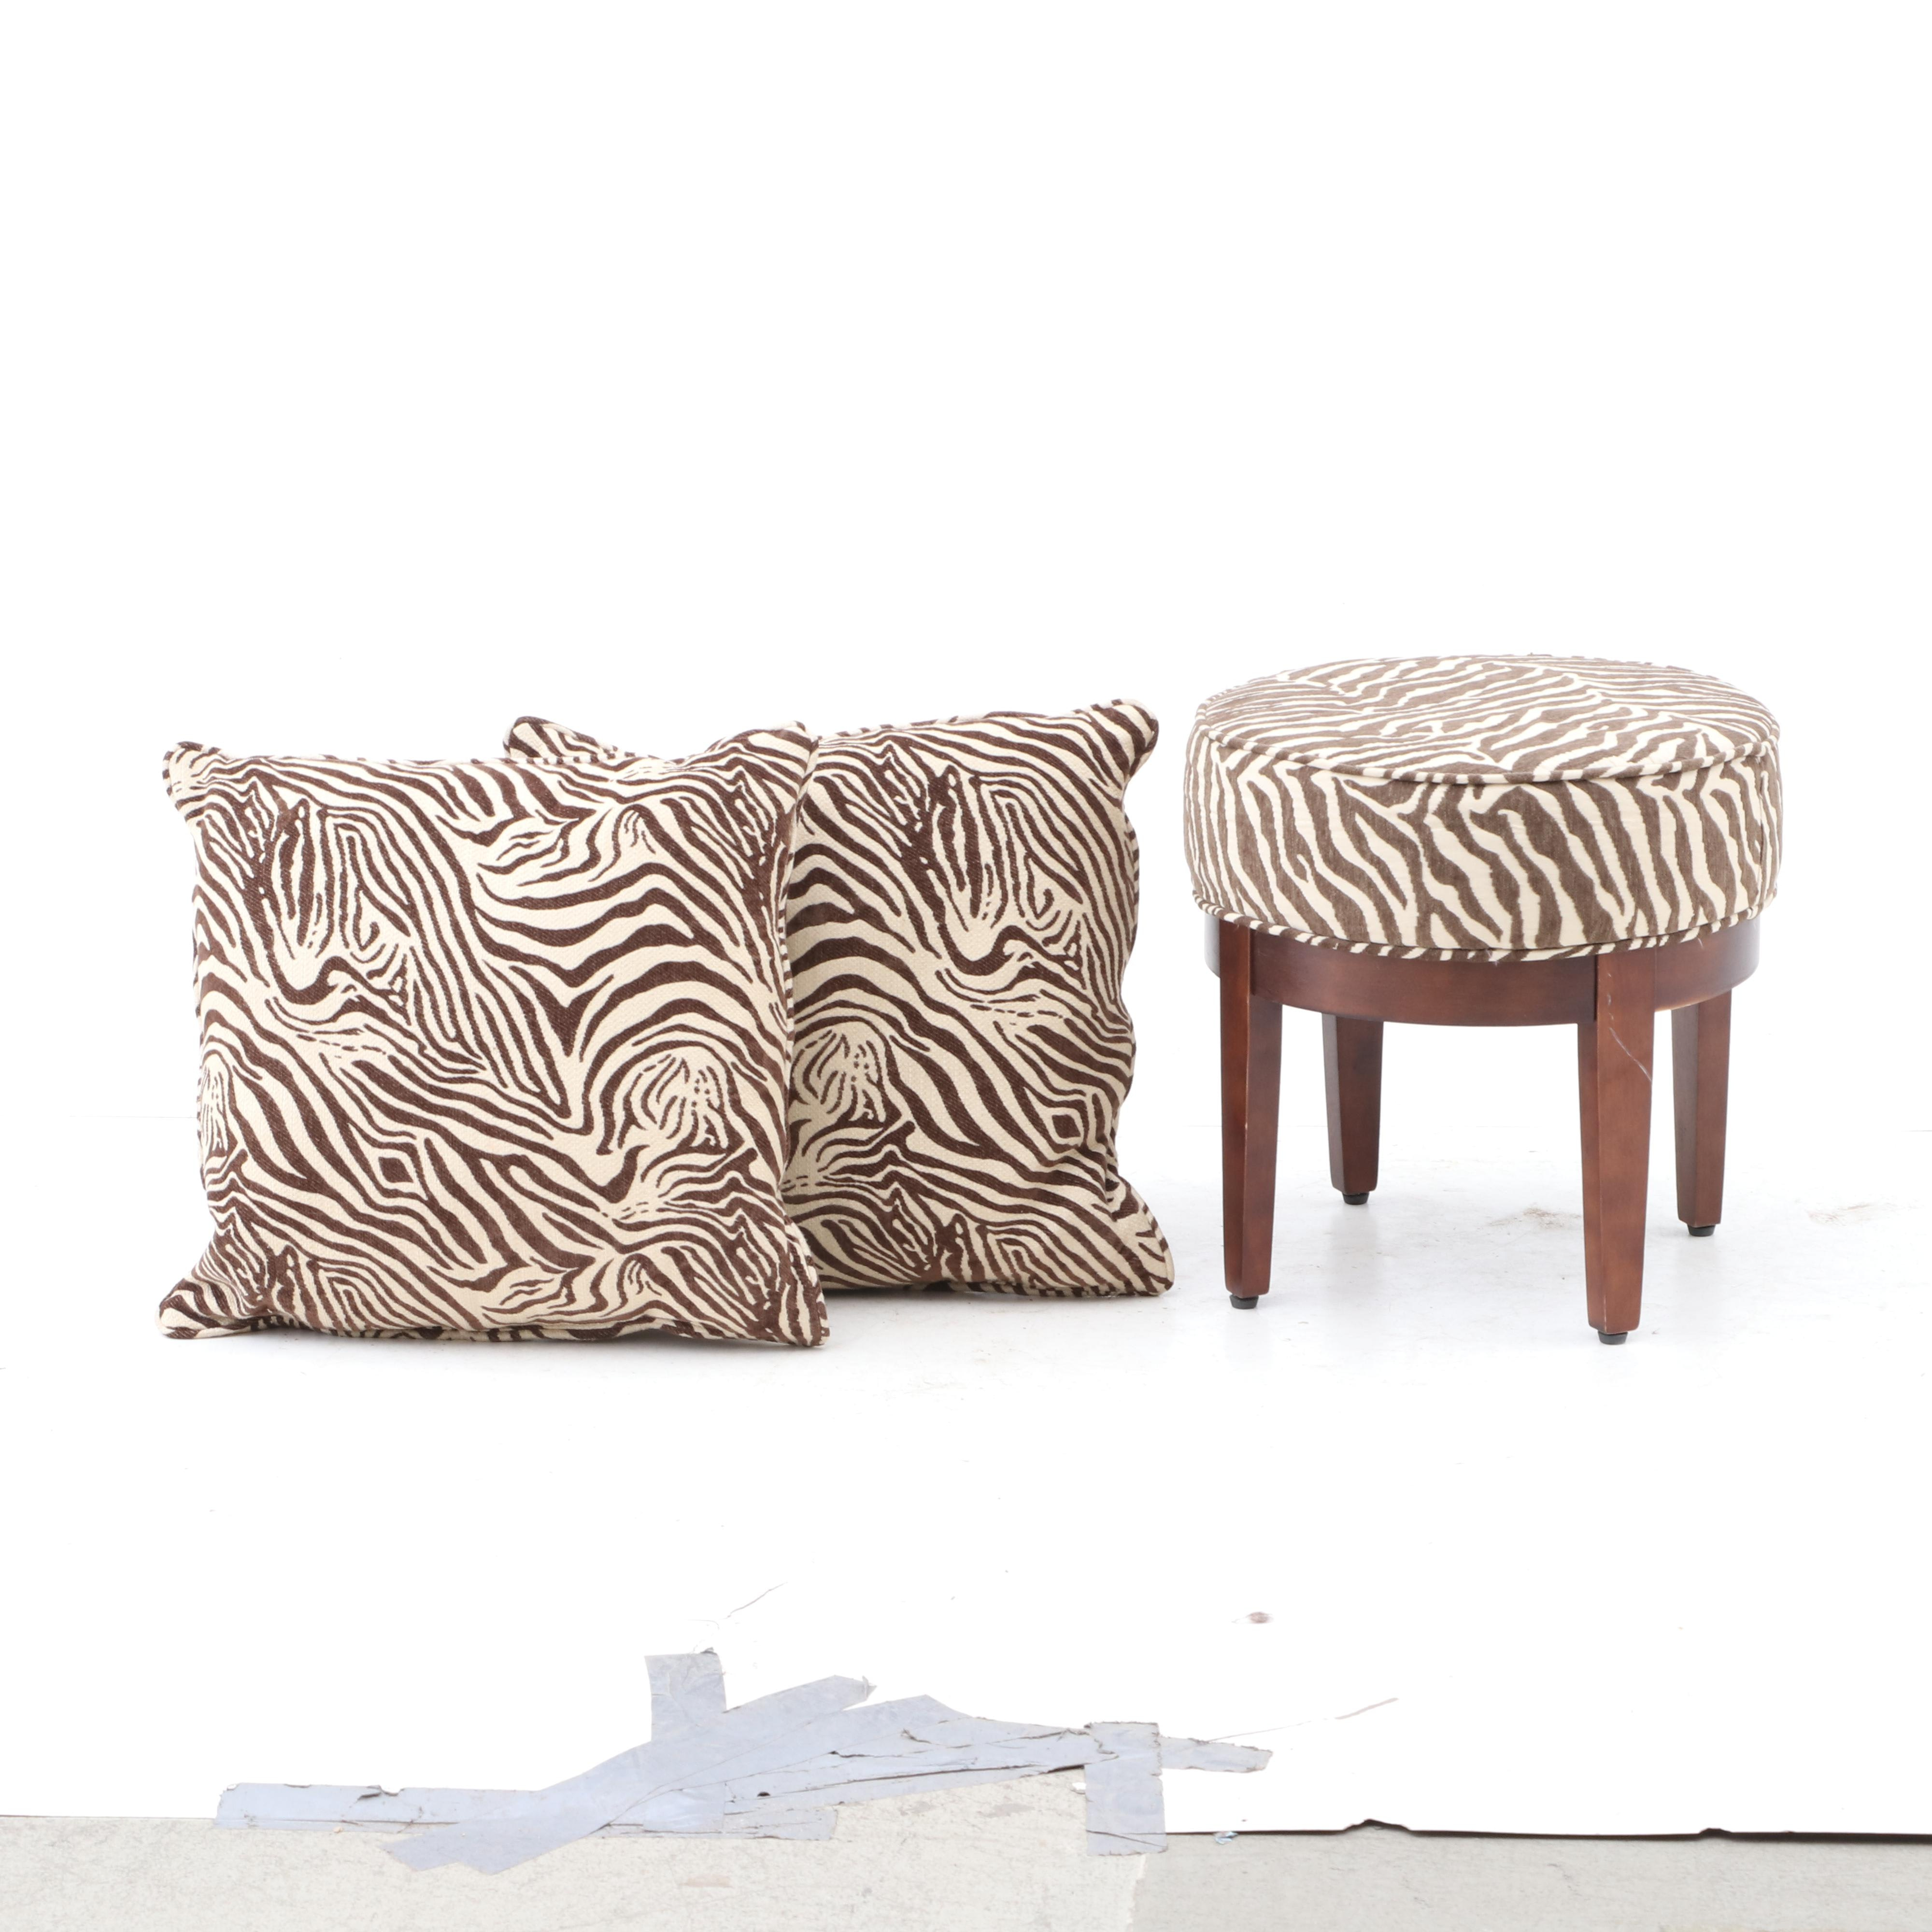 Contemporary Animal Print Footstool and Pillows